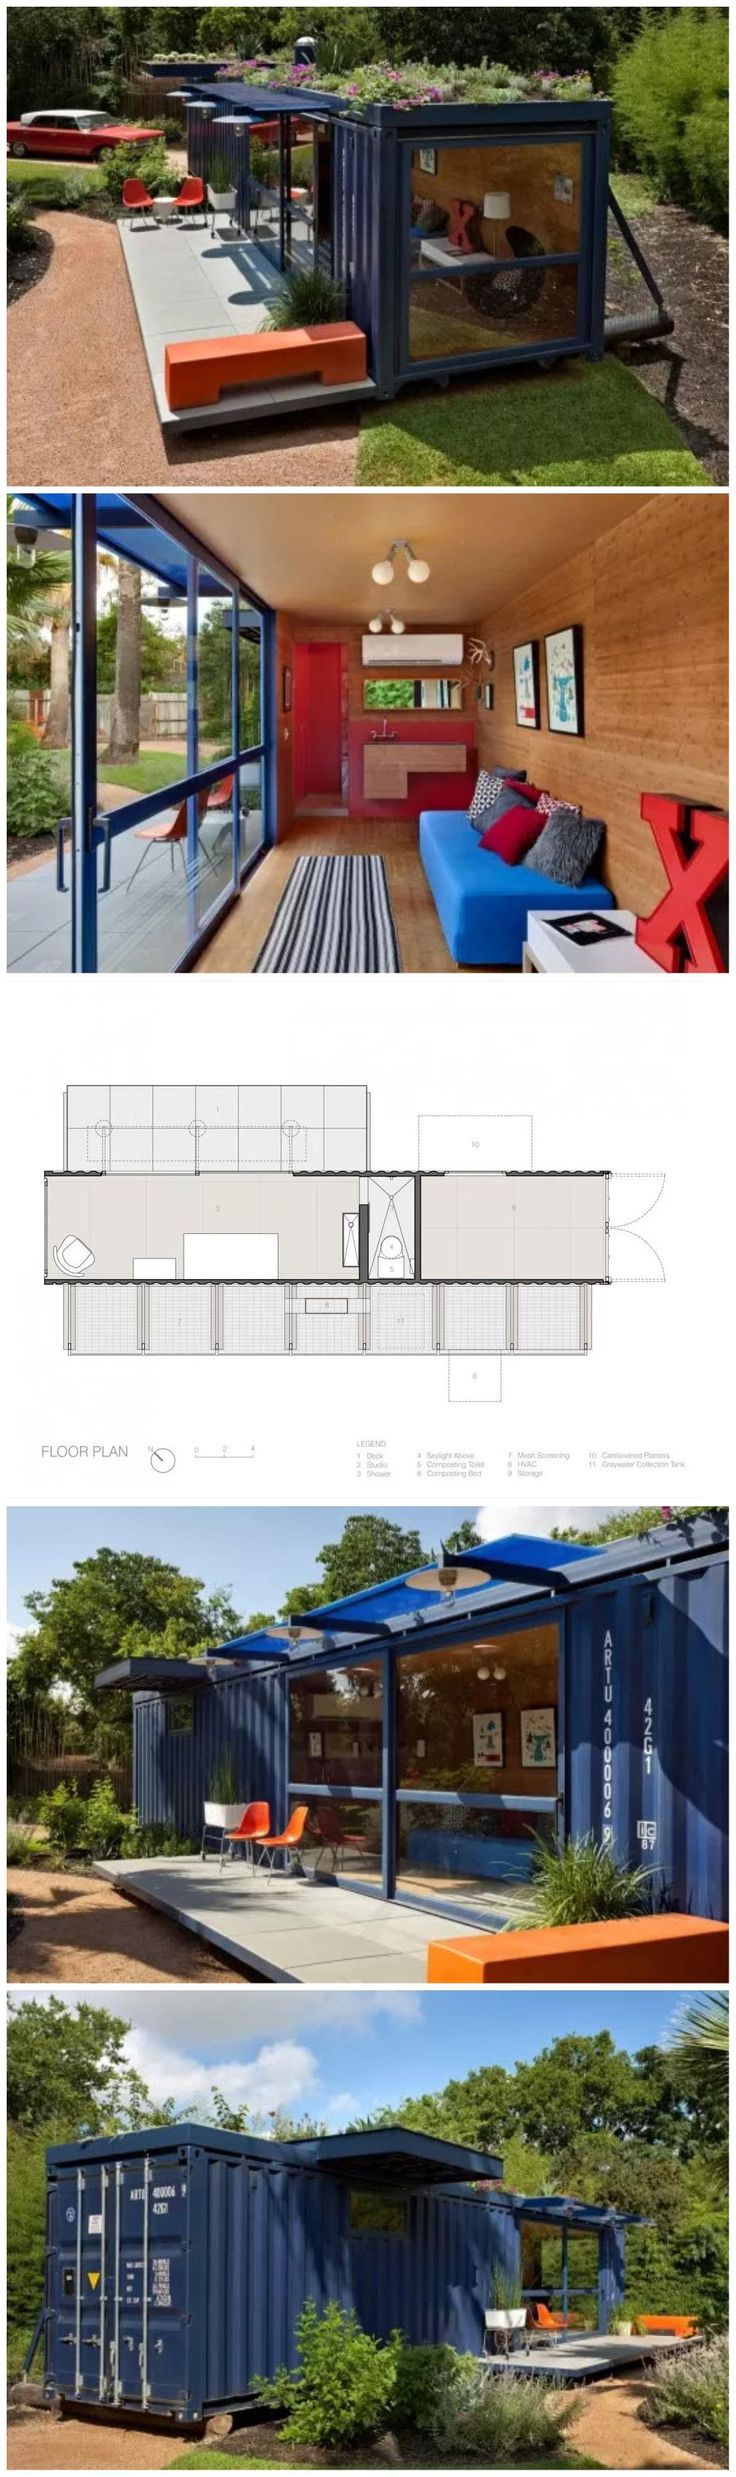 Container House-Add solar panels and plants on roof #home #design